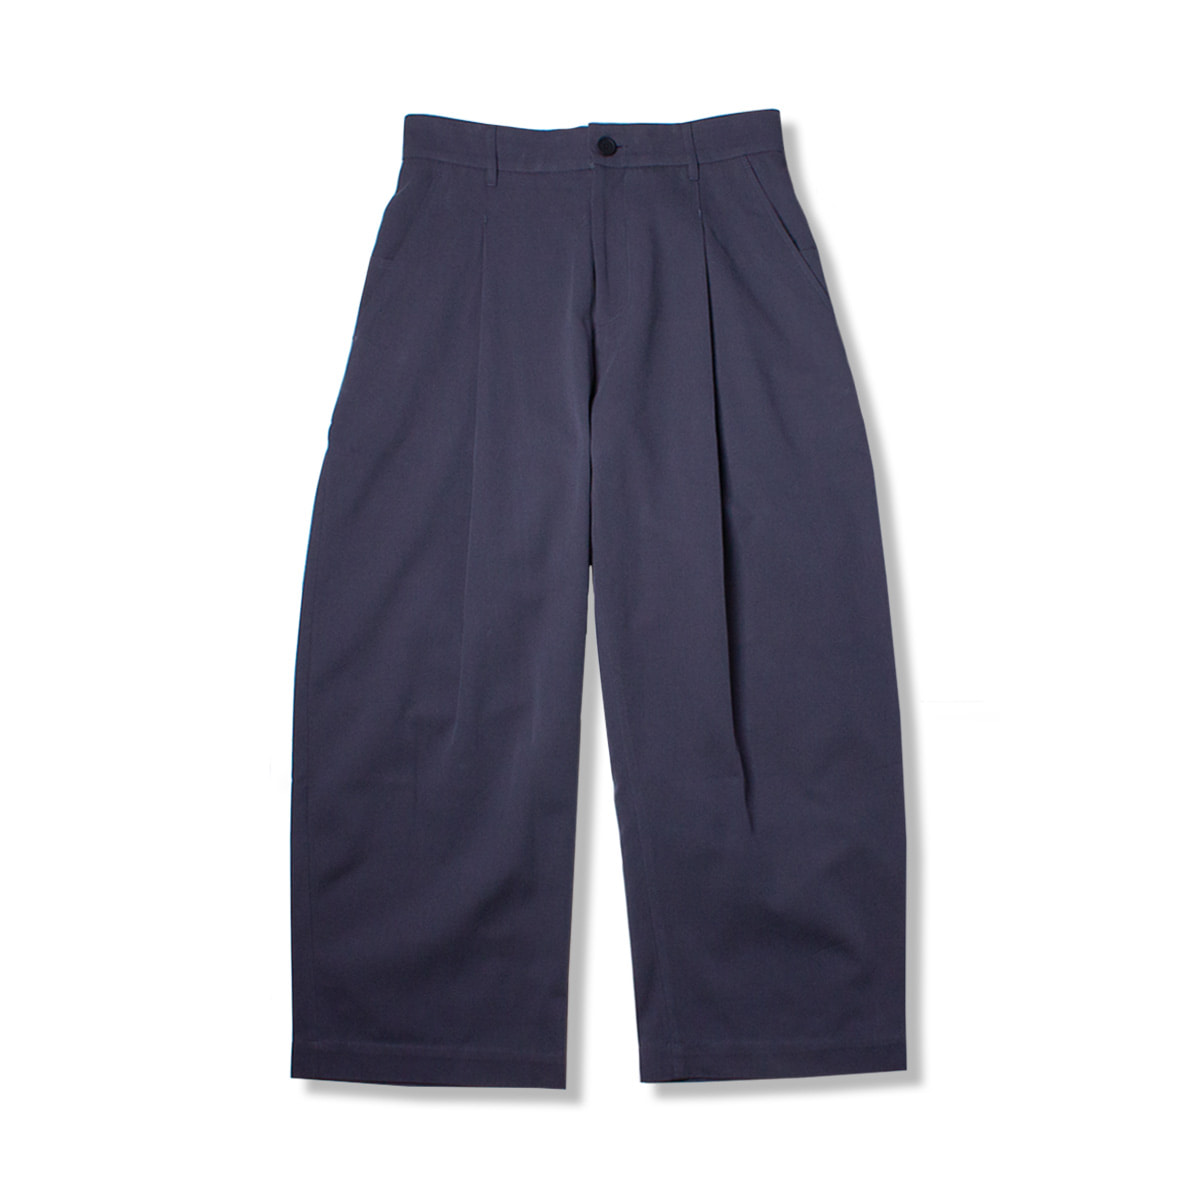 [STUDIO NICHOLSON] VOLUME PANTS 'GRAPHITE'